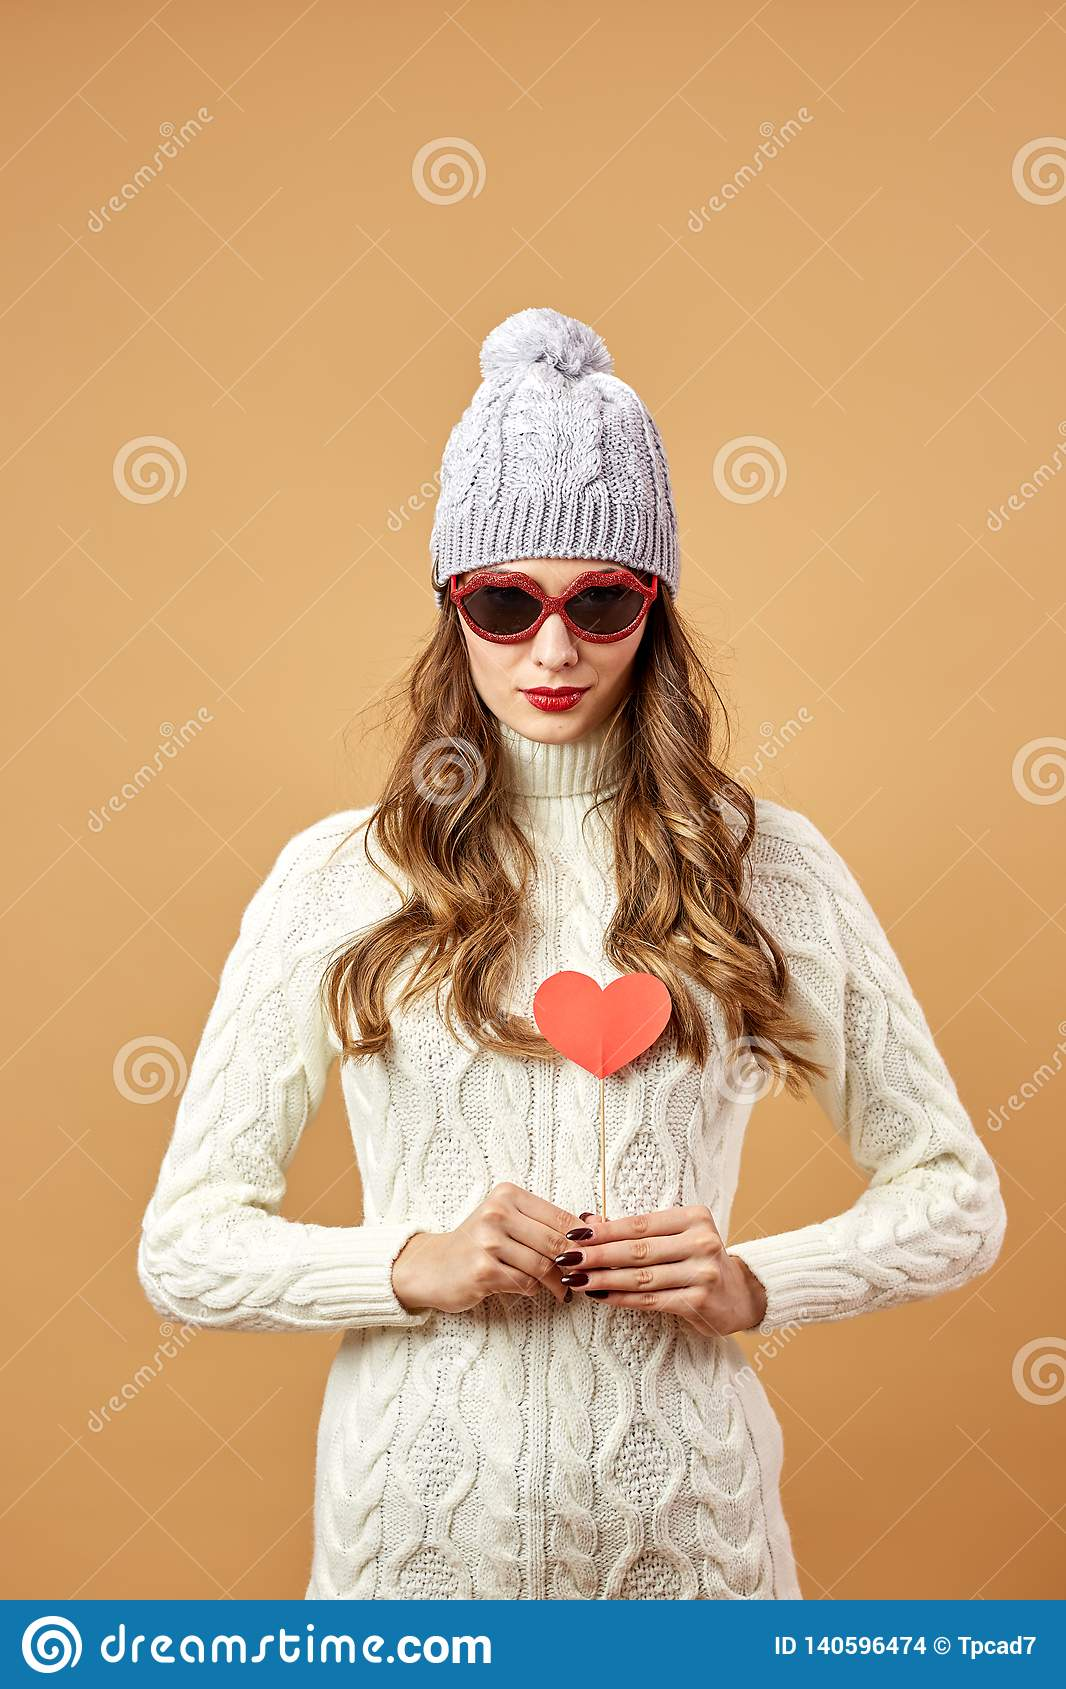 fc34b6118f4 Funny girl in sunglasses dressed in white knitted sweater and hat haves fun  with a red paper heart on a stick on a beige background in the studio .